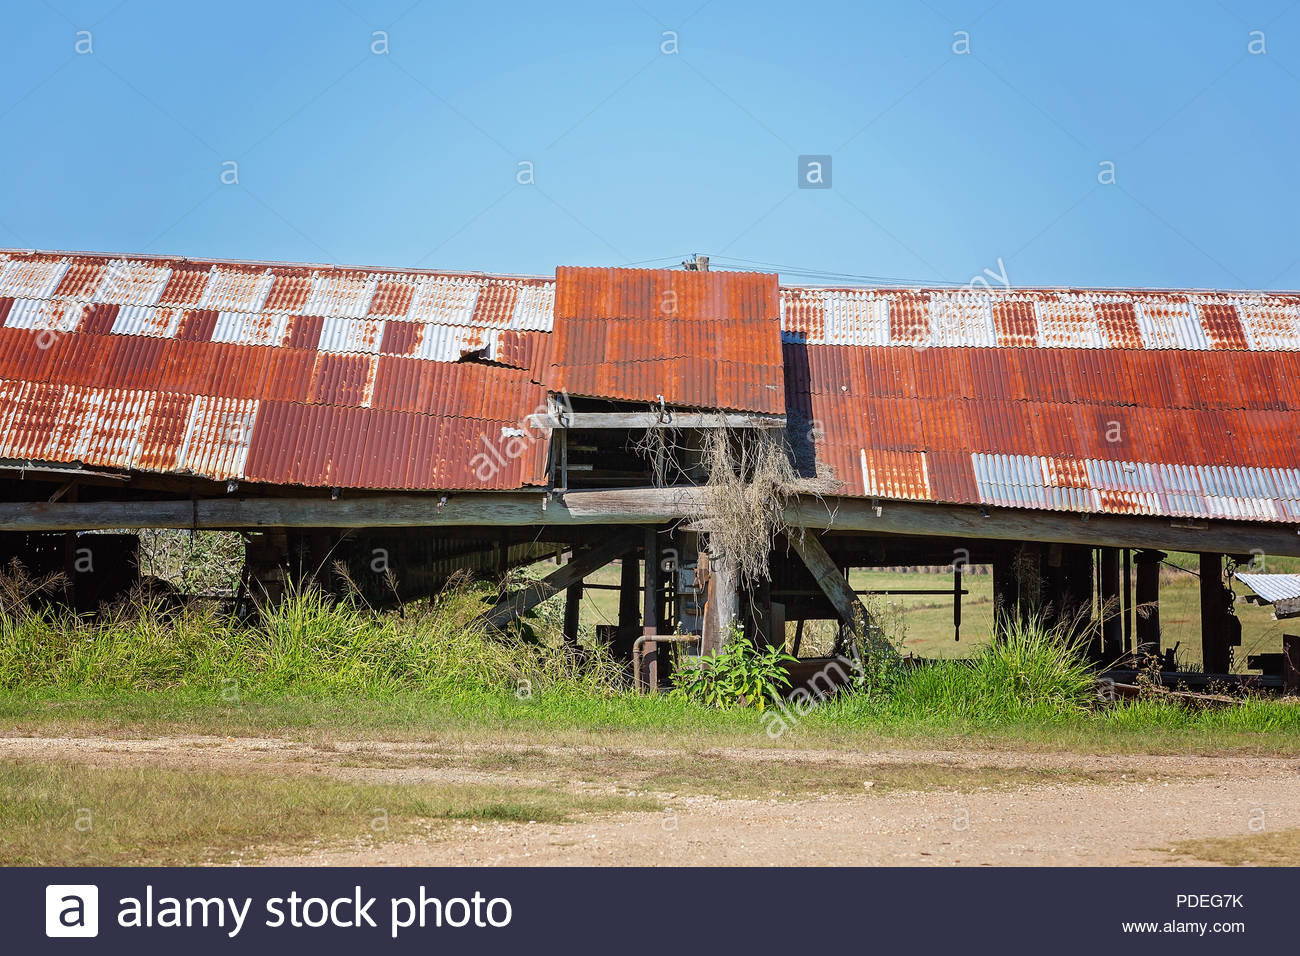 A long low decrepit old shed with rusted iron roof against a blue sky background - Stock Image